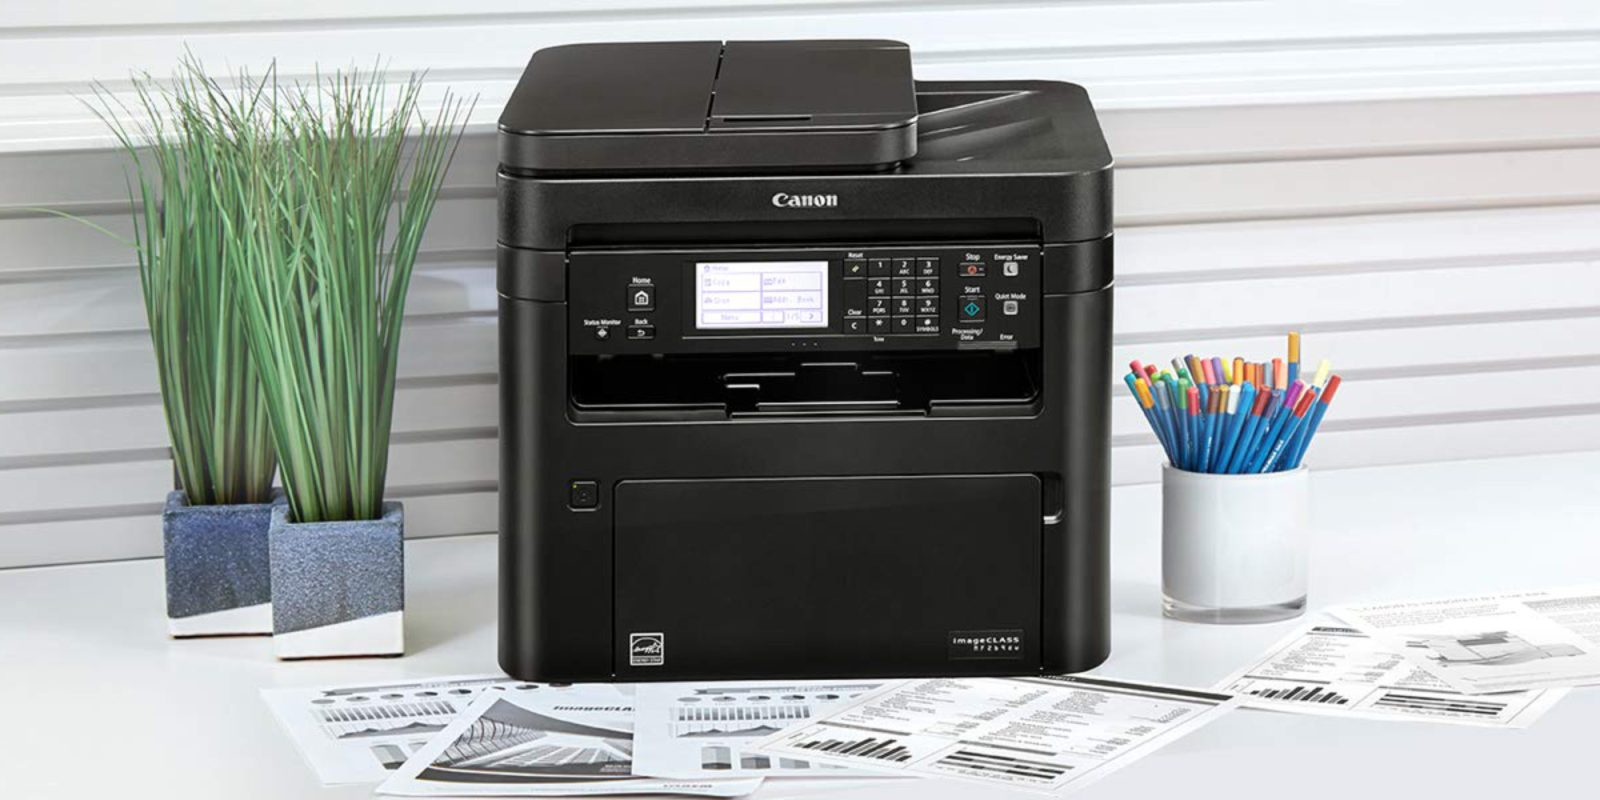 Embrace Apple AirPrint with Canon's Laser All-in-One: $149 (Reg. $180+)